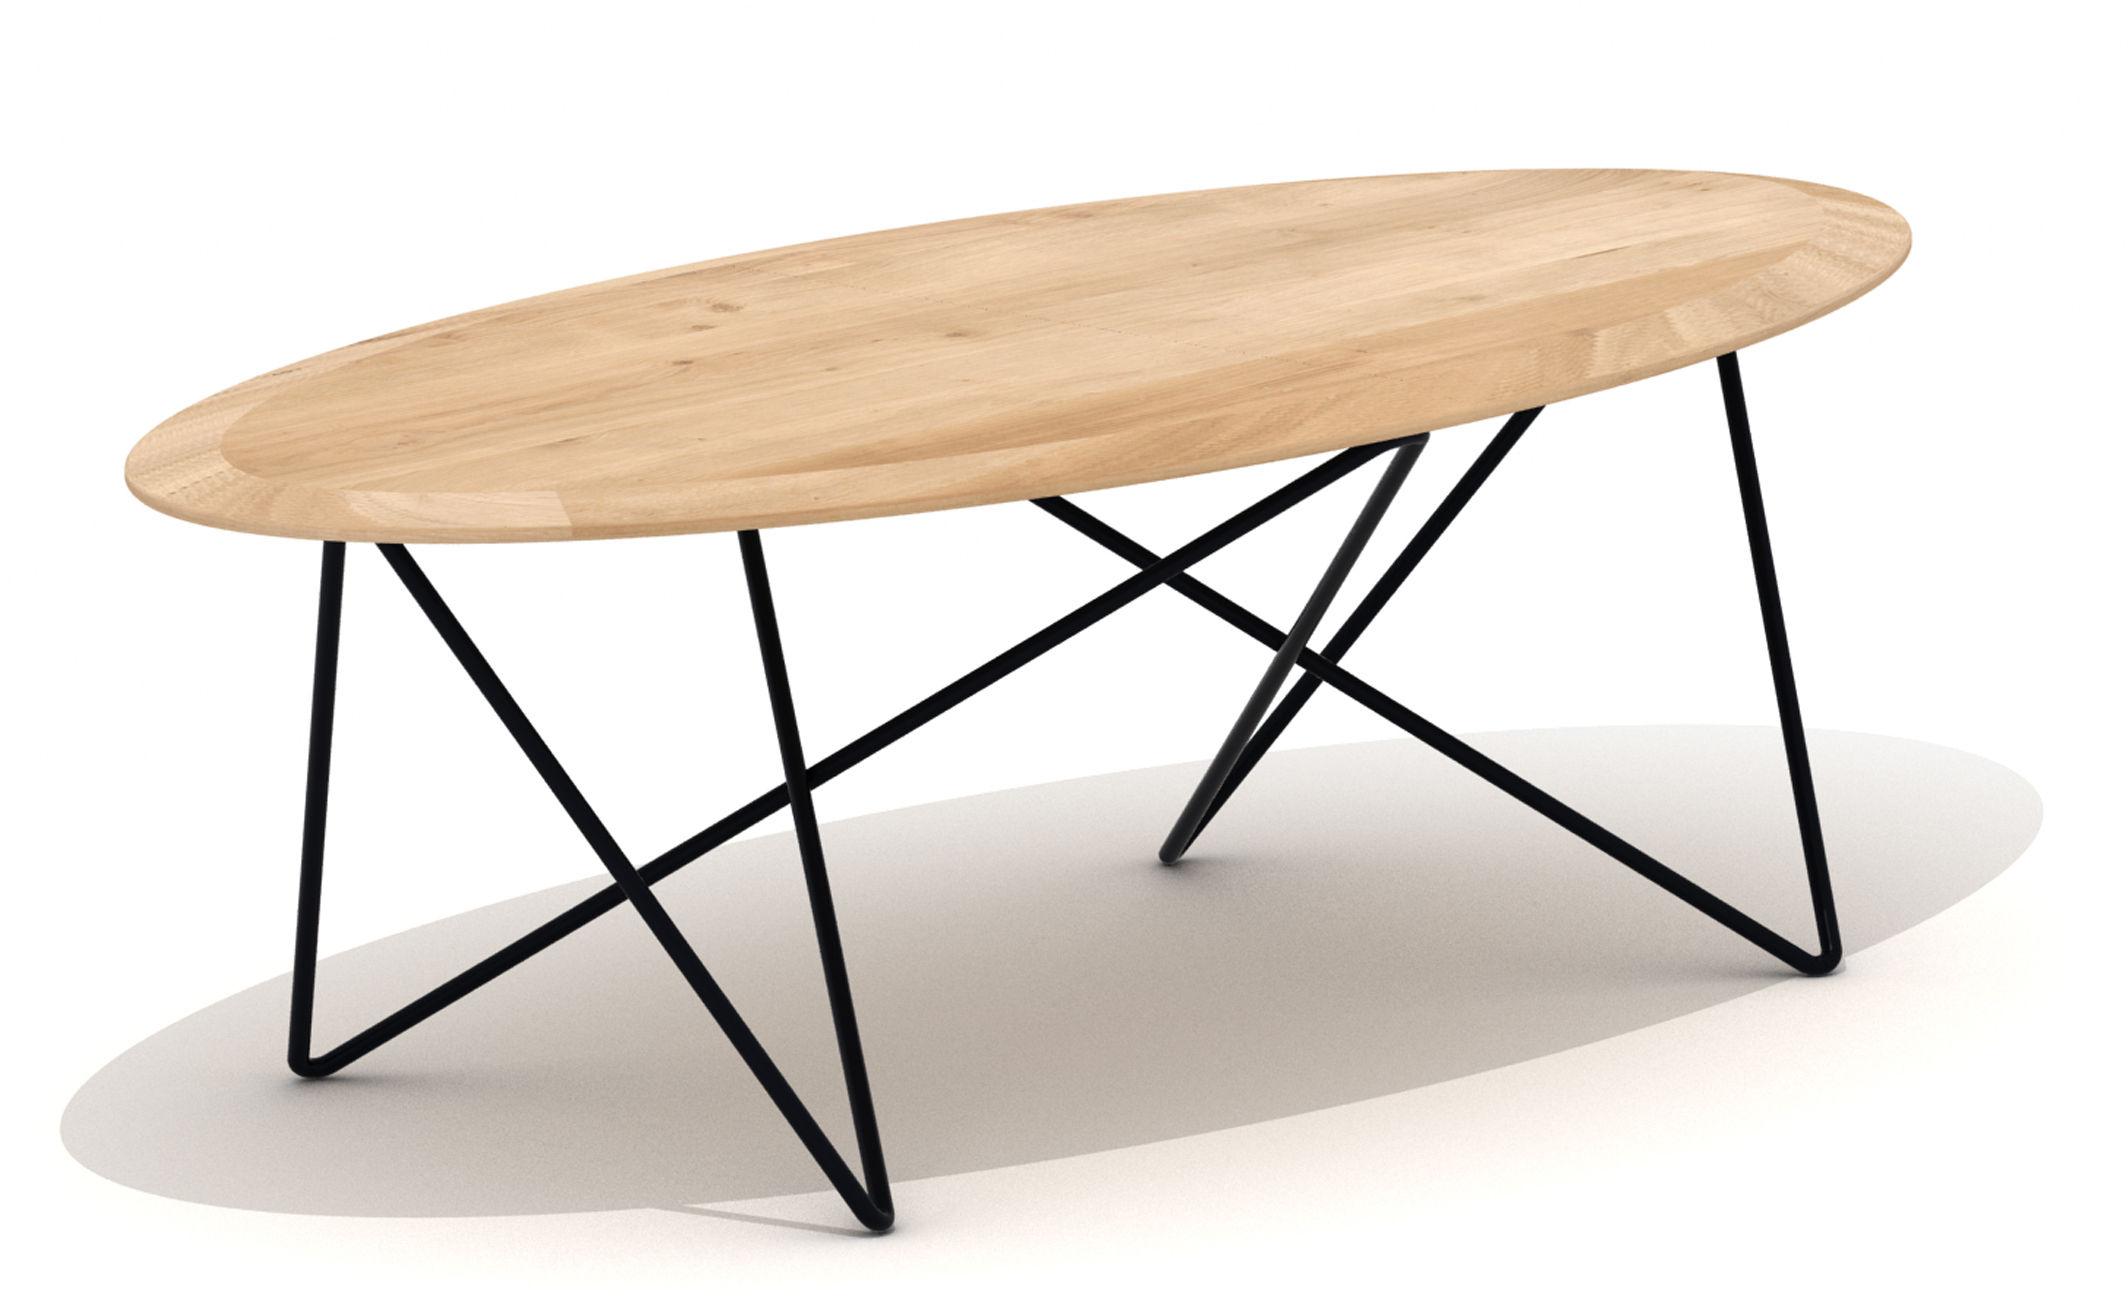 Orb coffee table l 130 cm natural wood black leg by for Table basse transformable